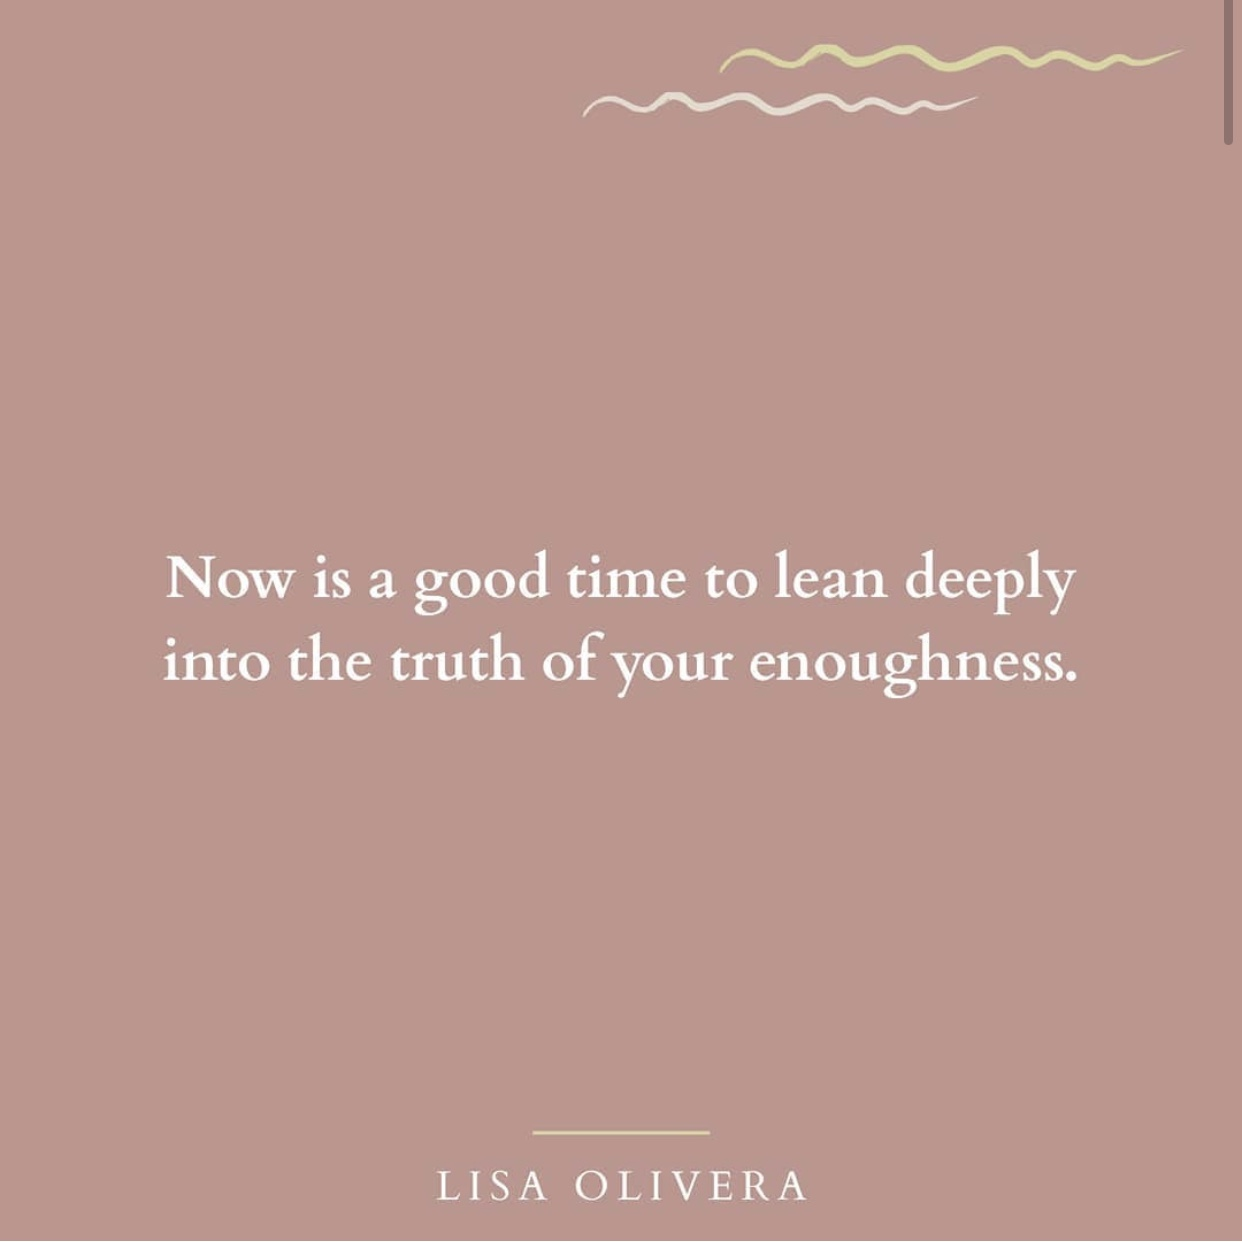 """""""Now is a good time to lean deeply into the truth of your enoughness"""" ~Lisa Olivera"""